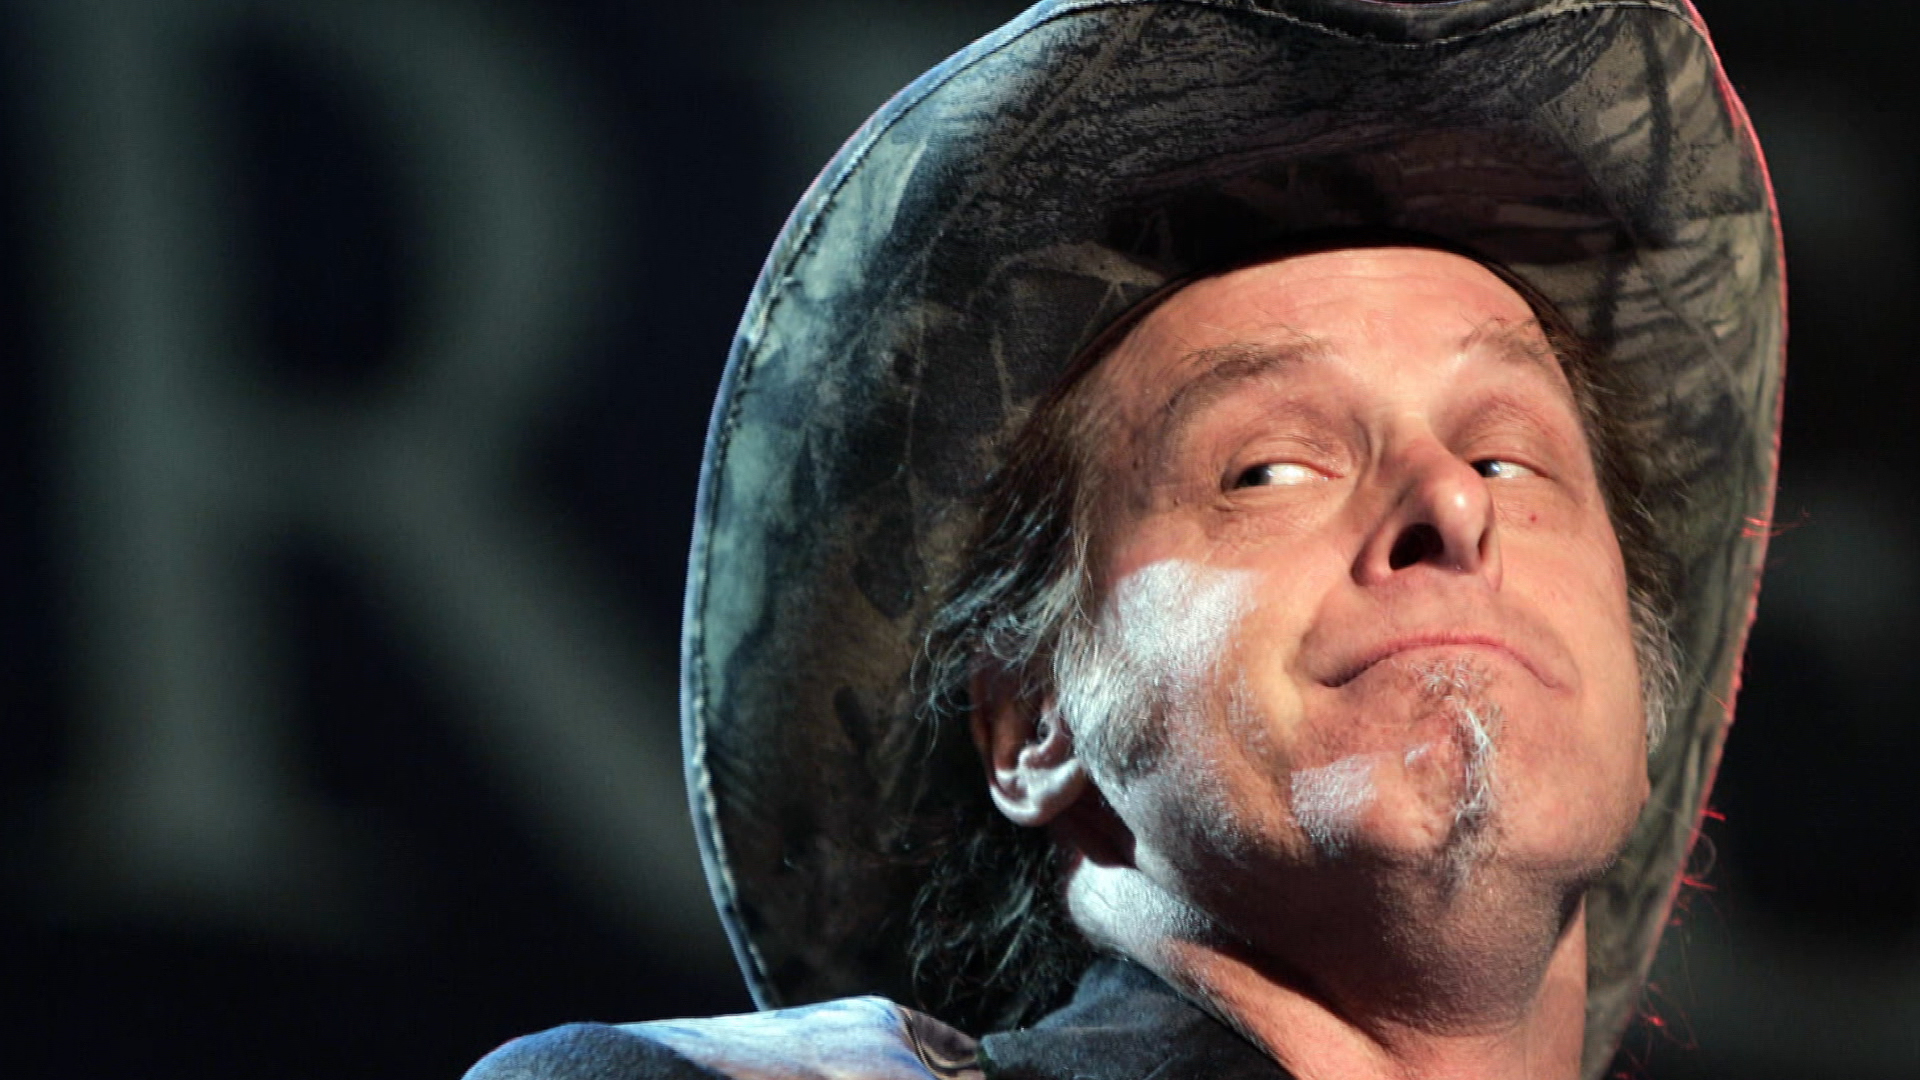 Why does the Texas GOP embrace Ted Nugent?